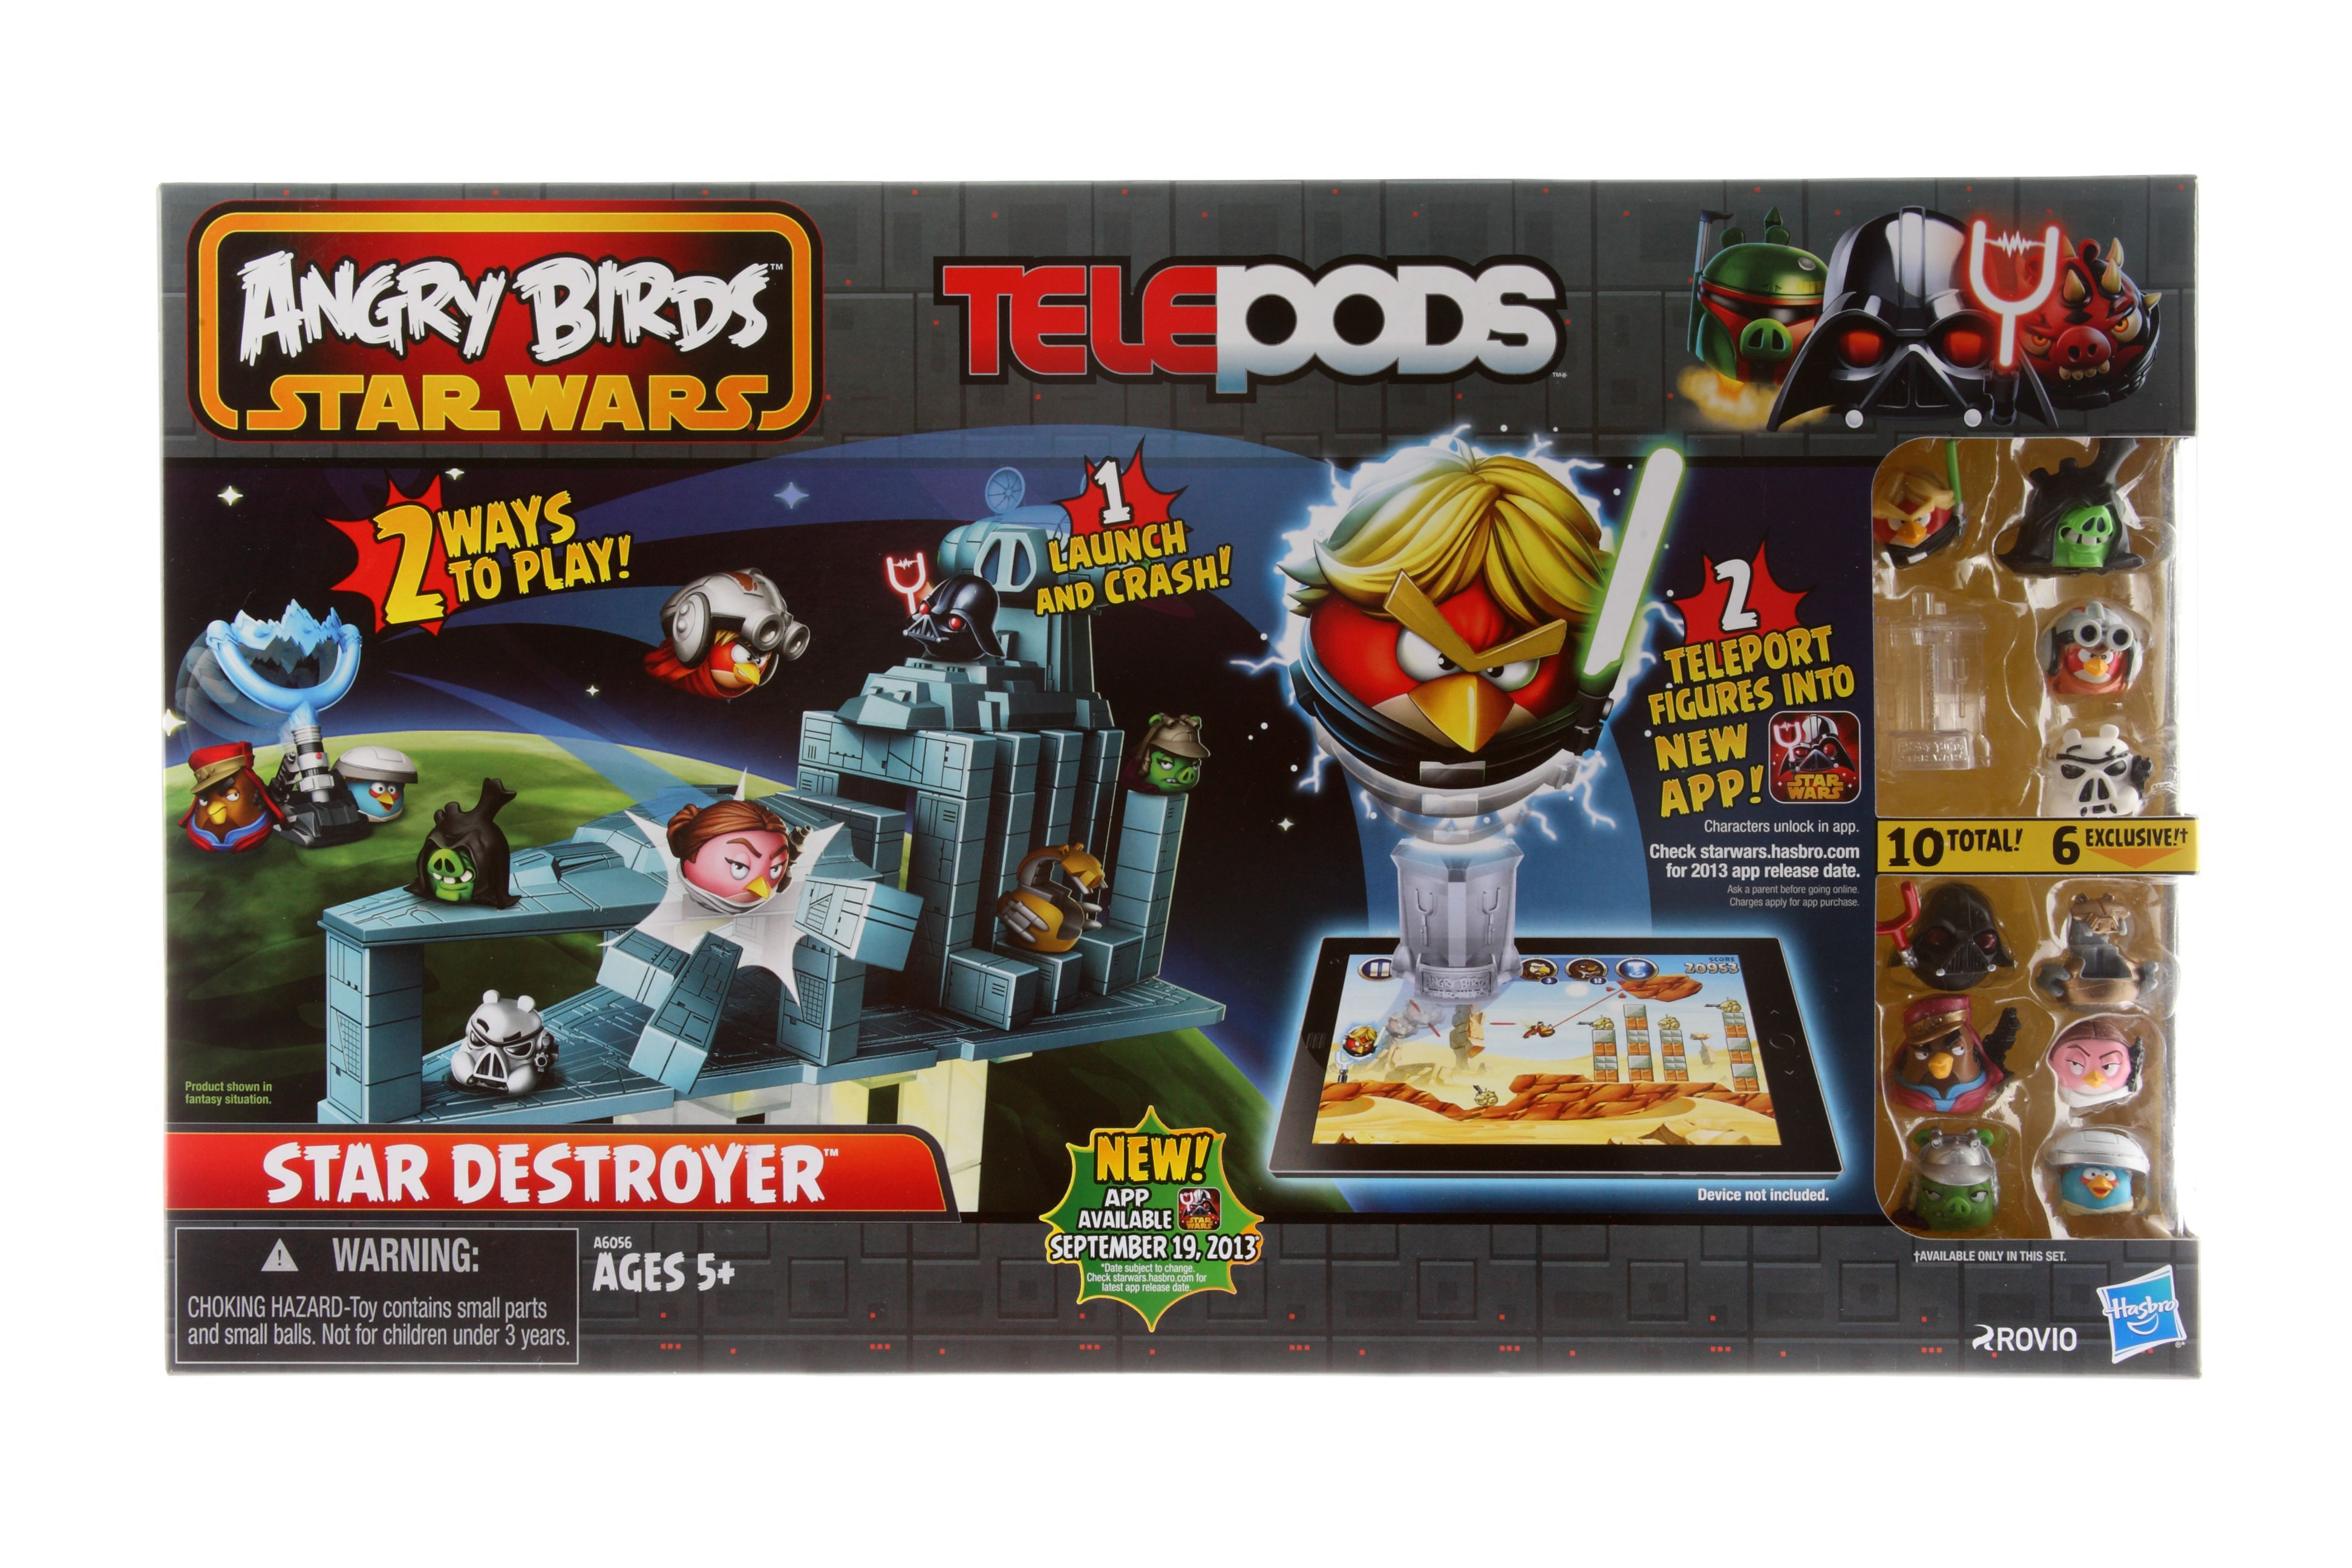 angry birds star wars 2 telepods star destroyer images galleries with a bite. Black Bedroom Furniture Sets. Home Design Ideas